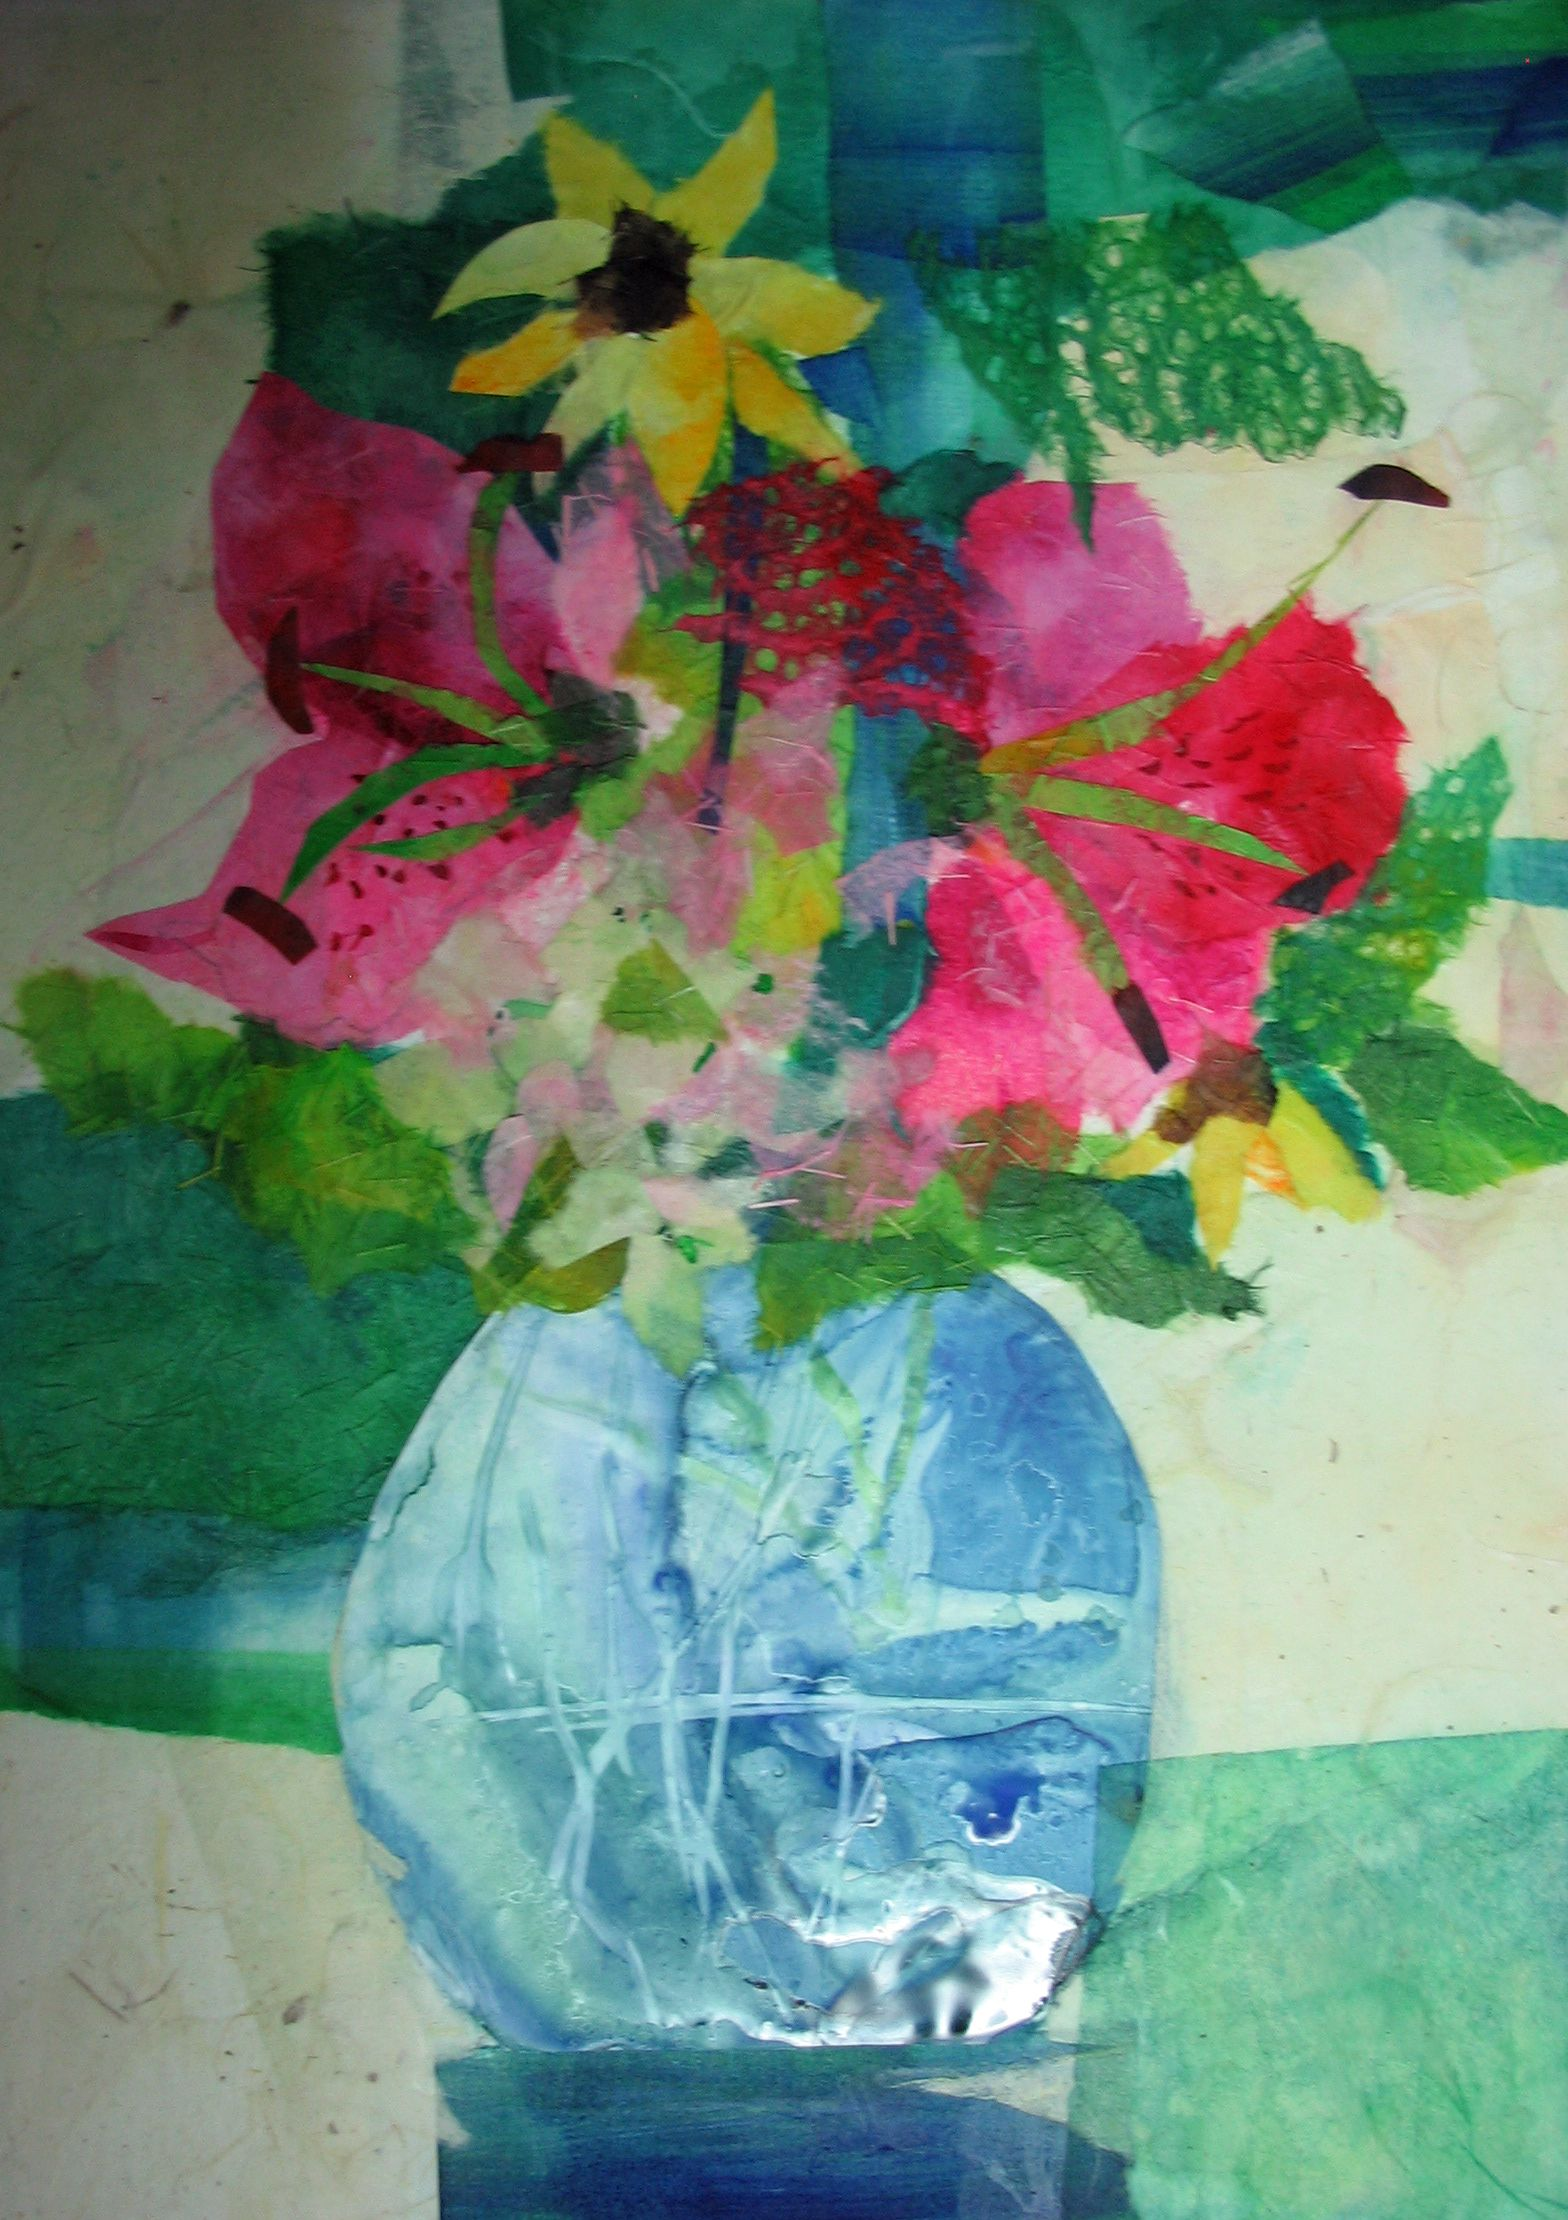 156bdfae66 What I love about this stained paper collage is the vase. The vase is Yupo  paper which makes the water in the vase very real looking.